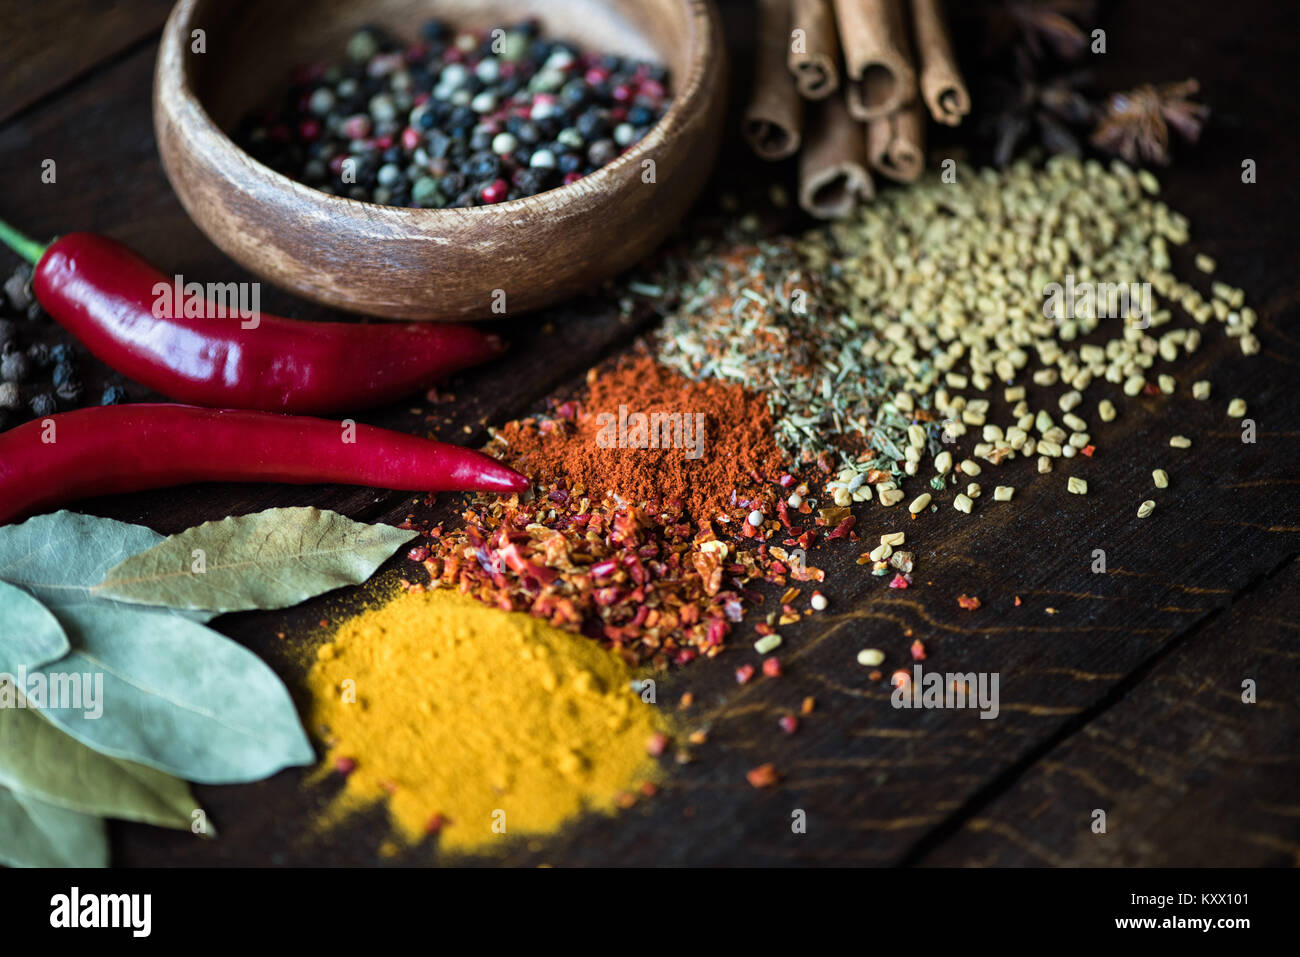 close up of pepper in bowl with scattered spices, laurel leaves, chili peppers on wooden tabletop - Stock Image